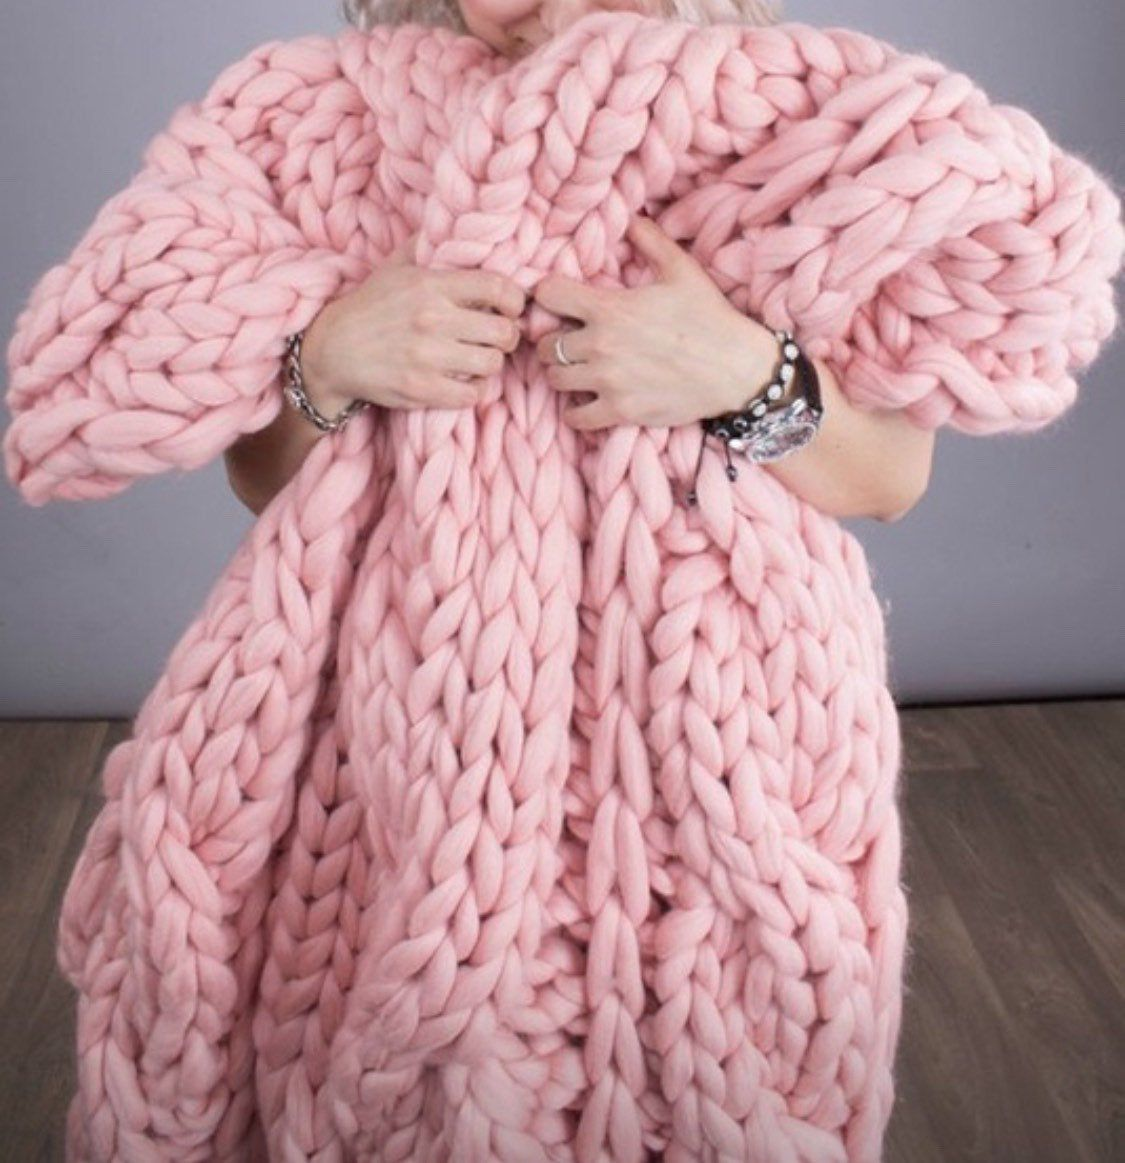 Thick wool blanket , hand knitted blanket , pink knitted